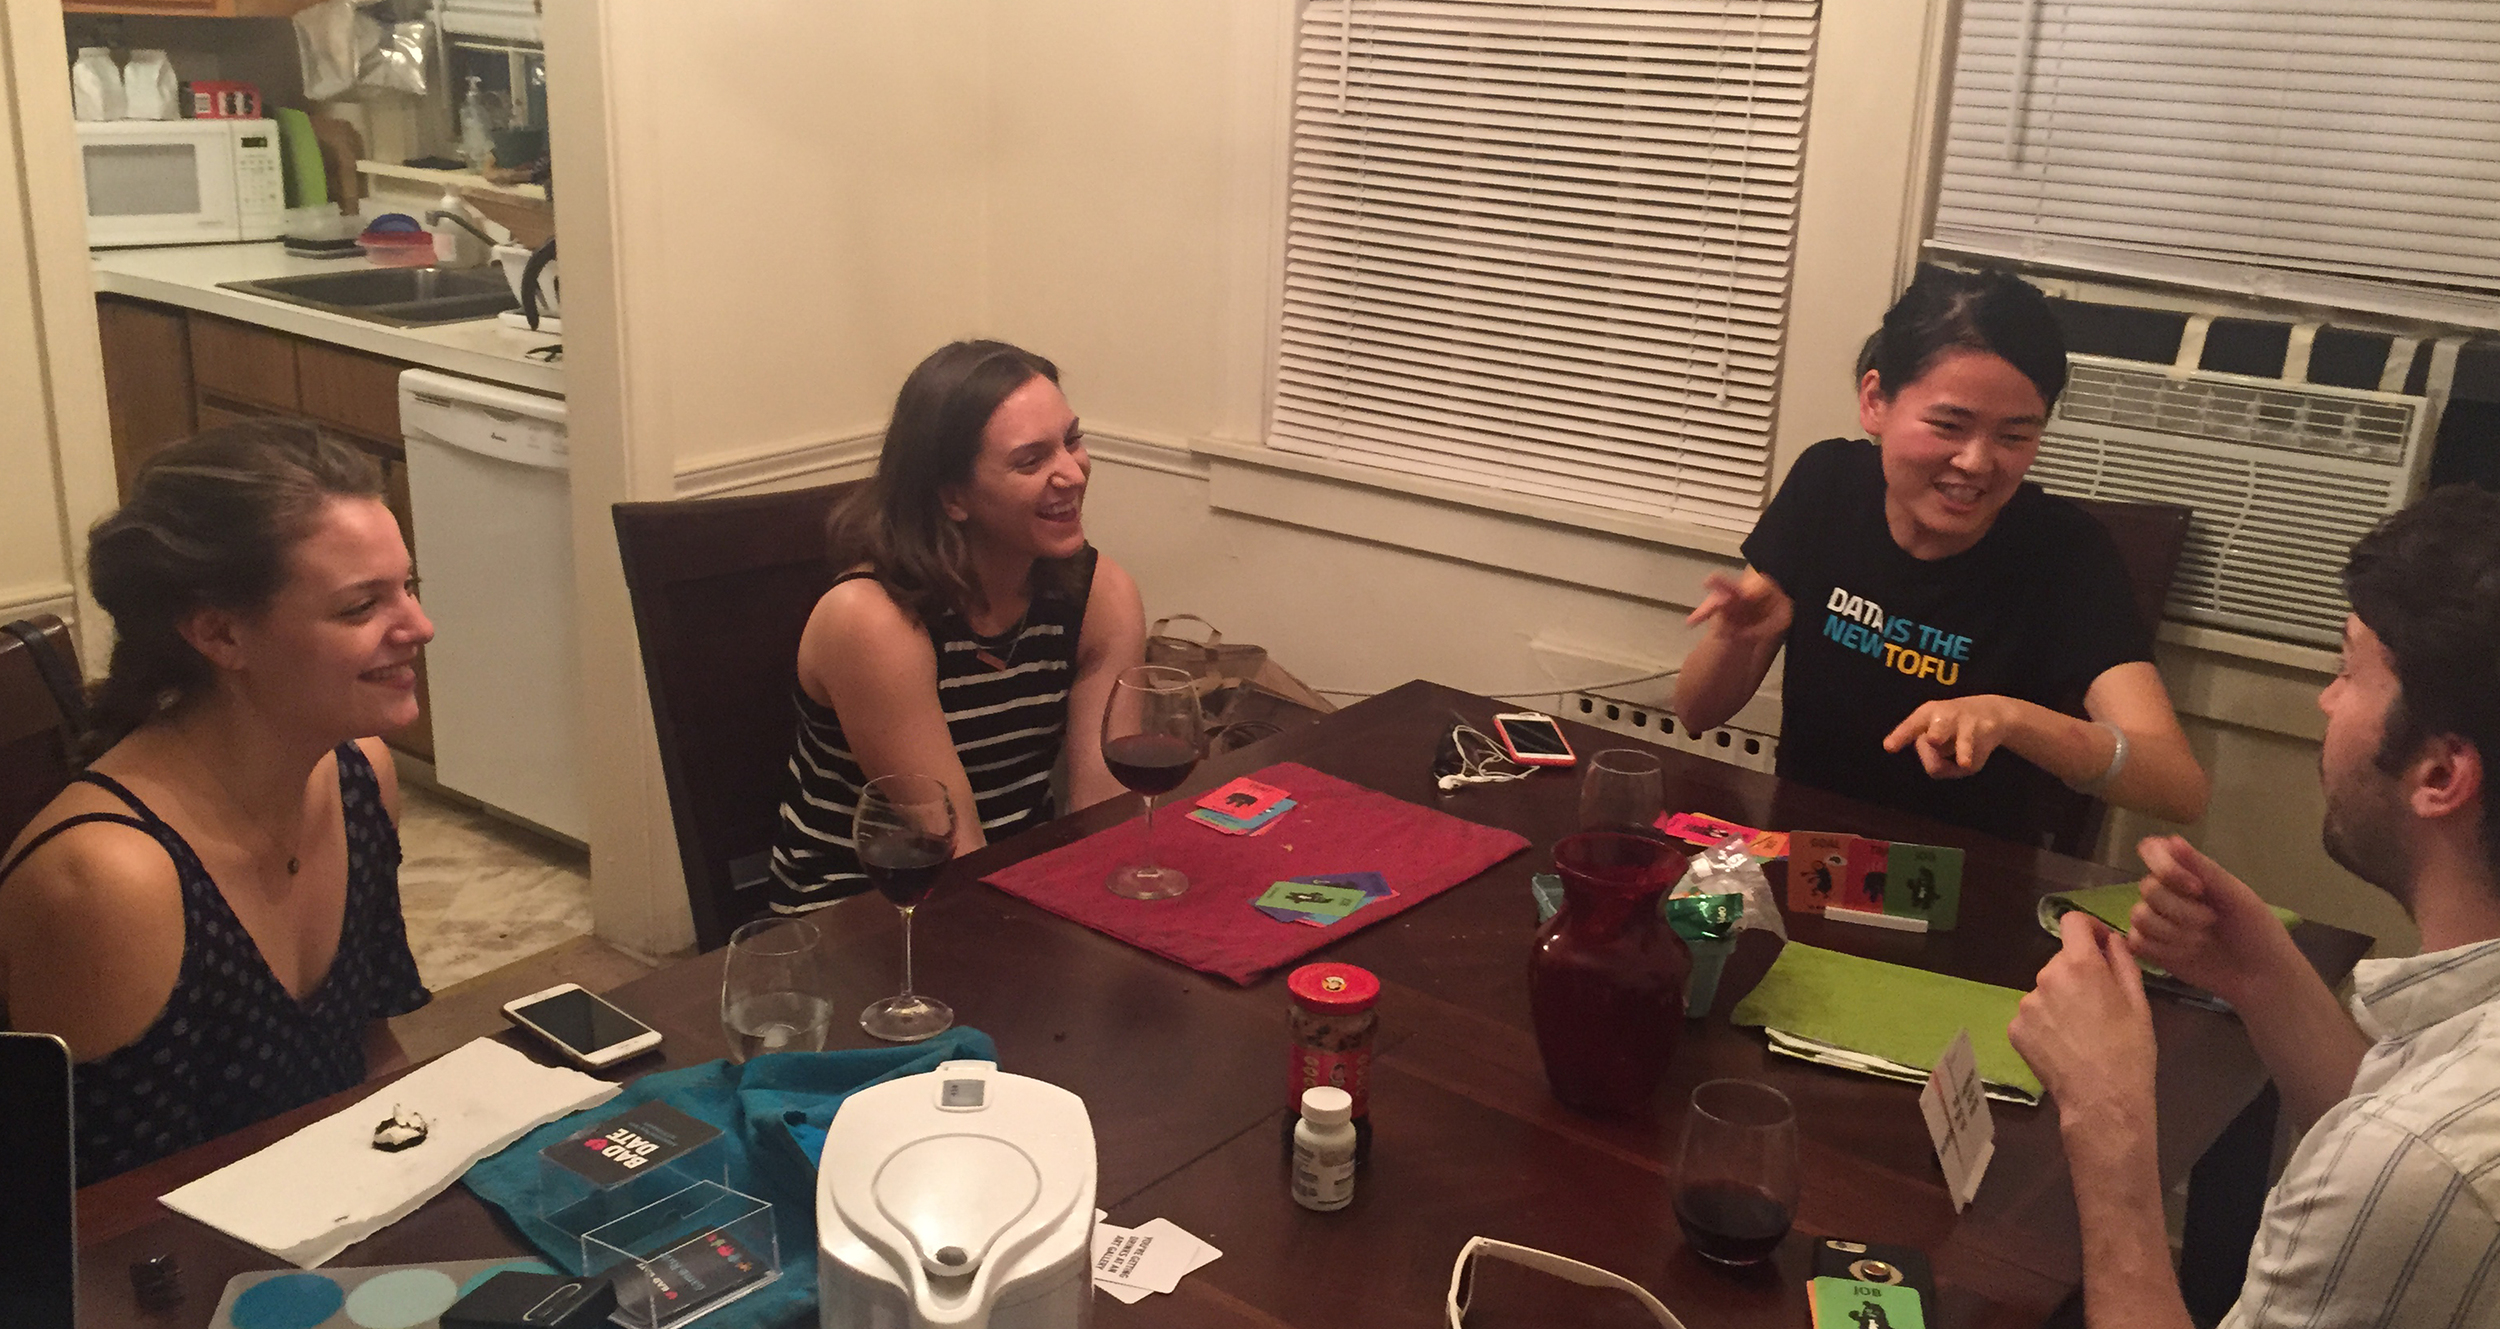 BAD DATE - A pocket-sized, improv-style party game